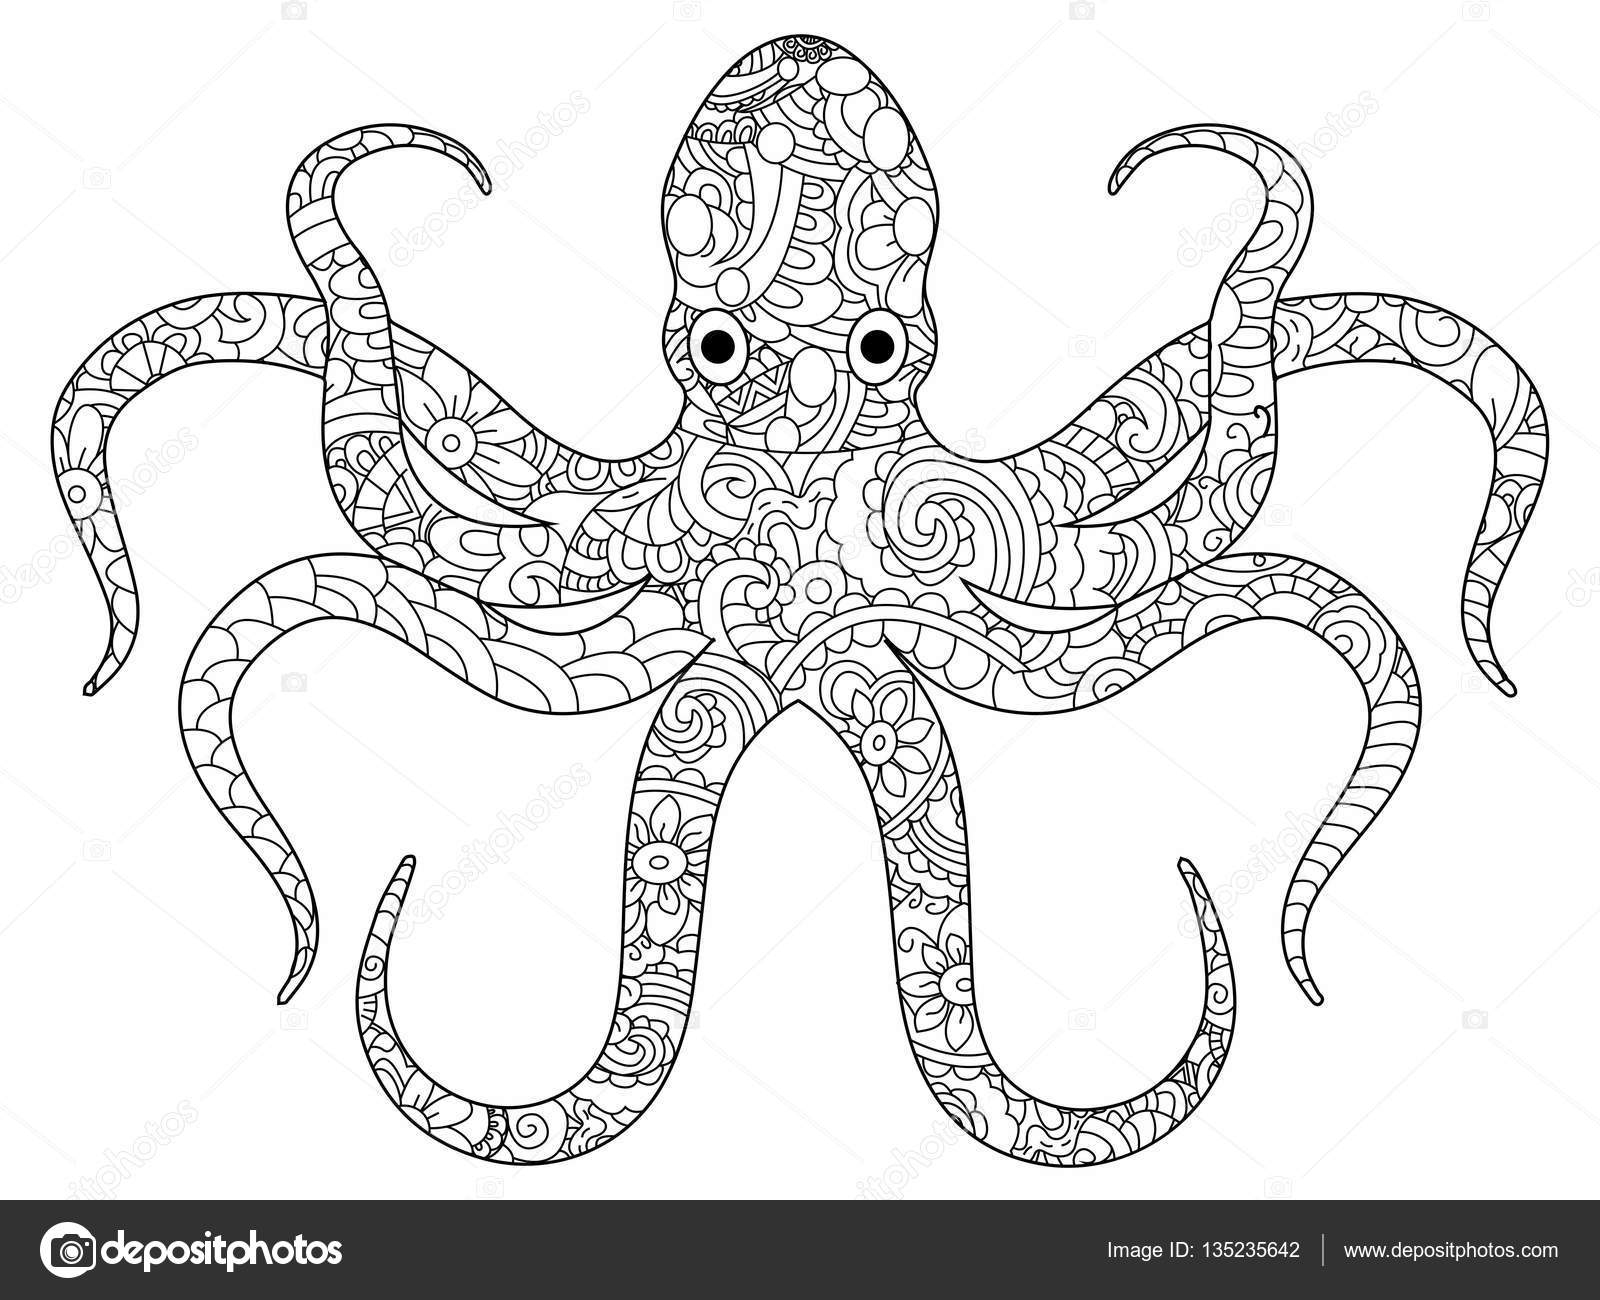 Pulpo para colorear libro de vectores adultos — Vector de stock ...